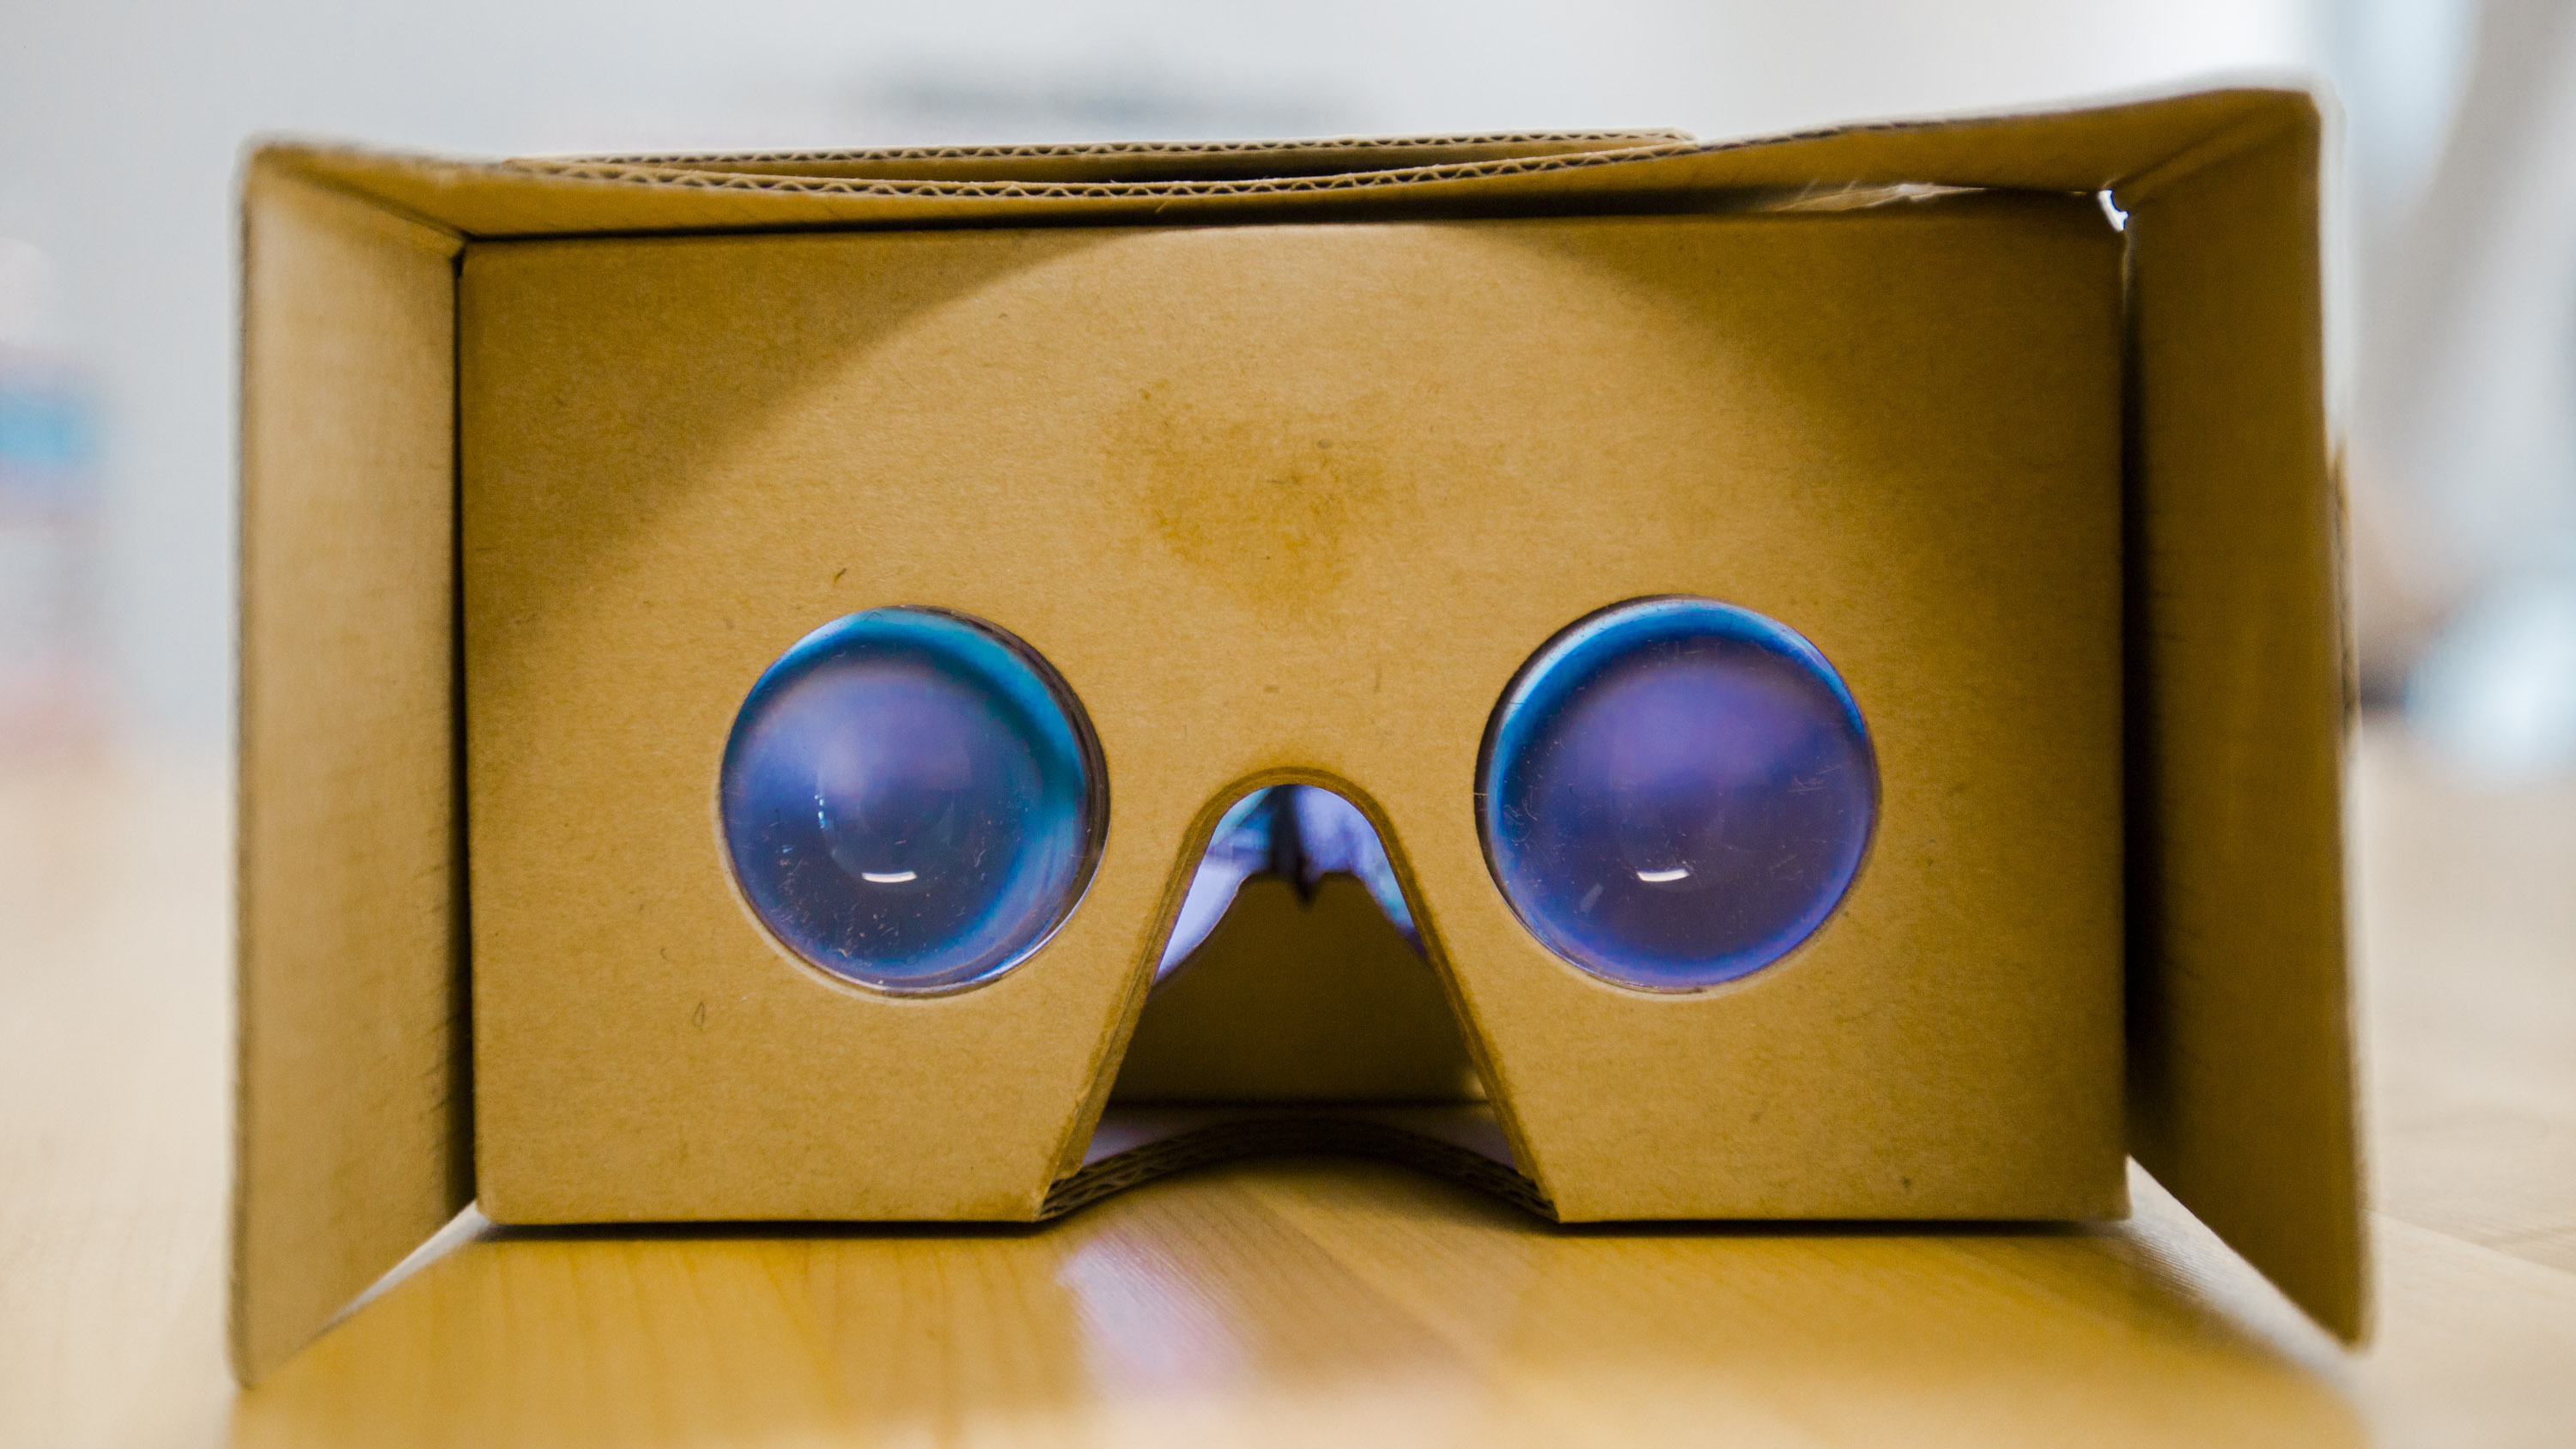 For YouTube, virtual reality means 3D video for everyone